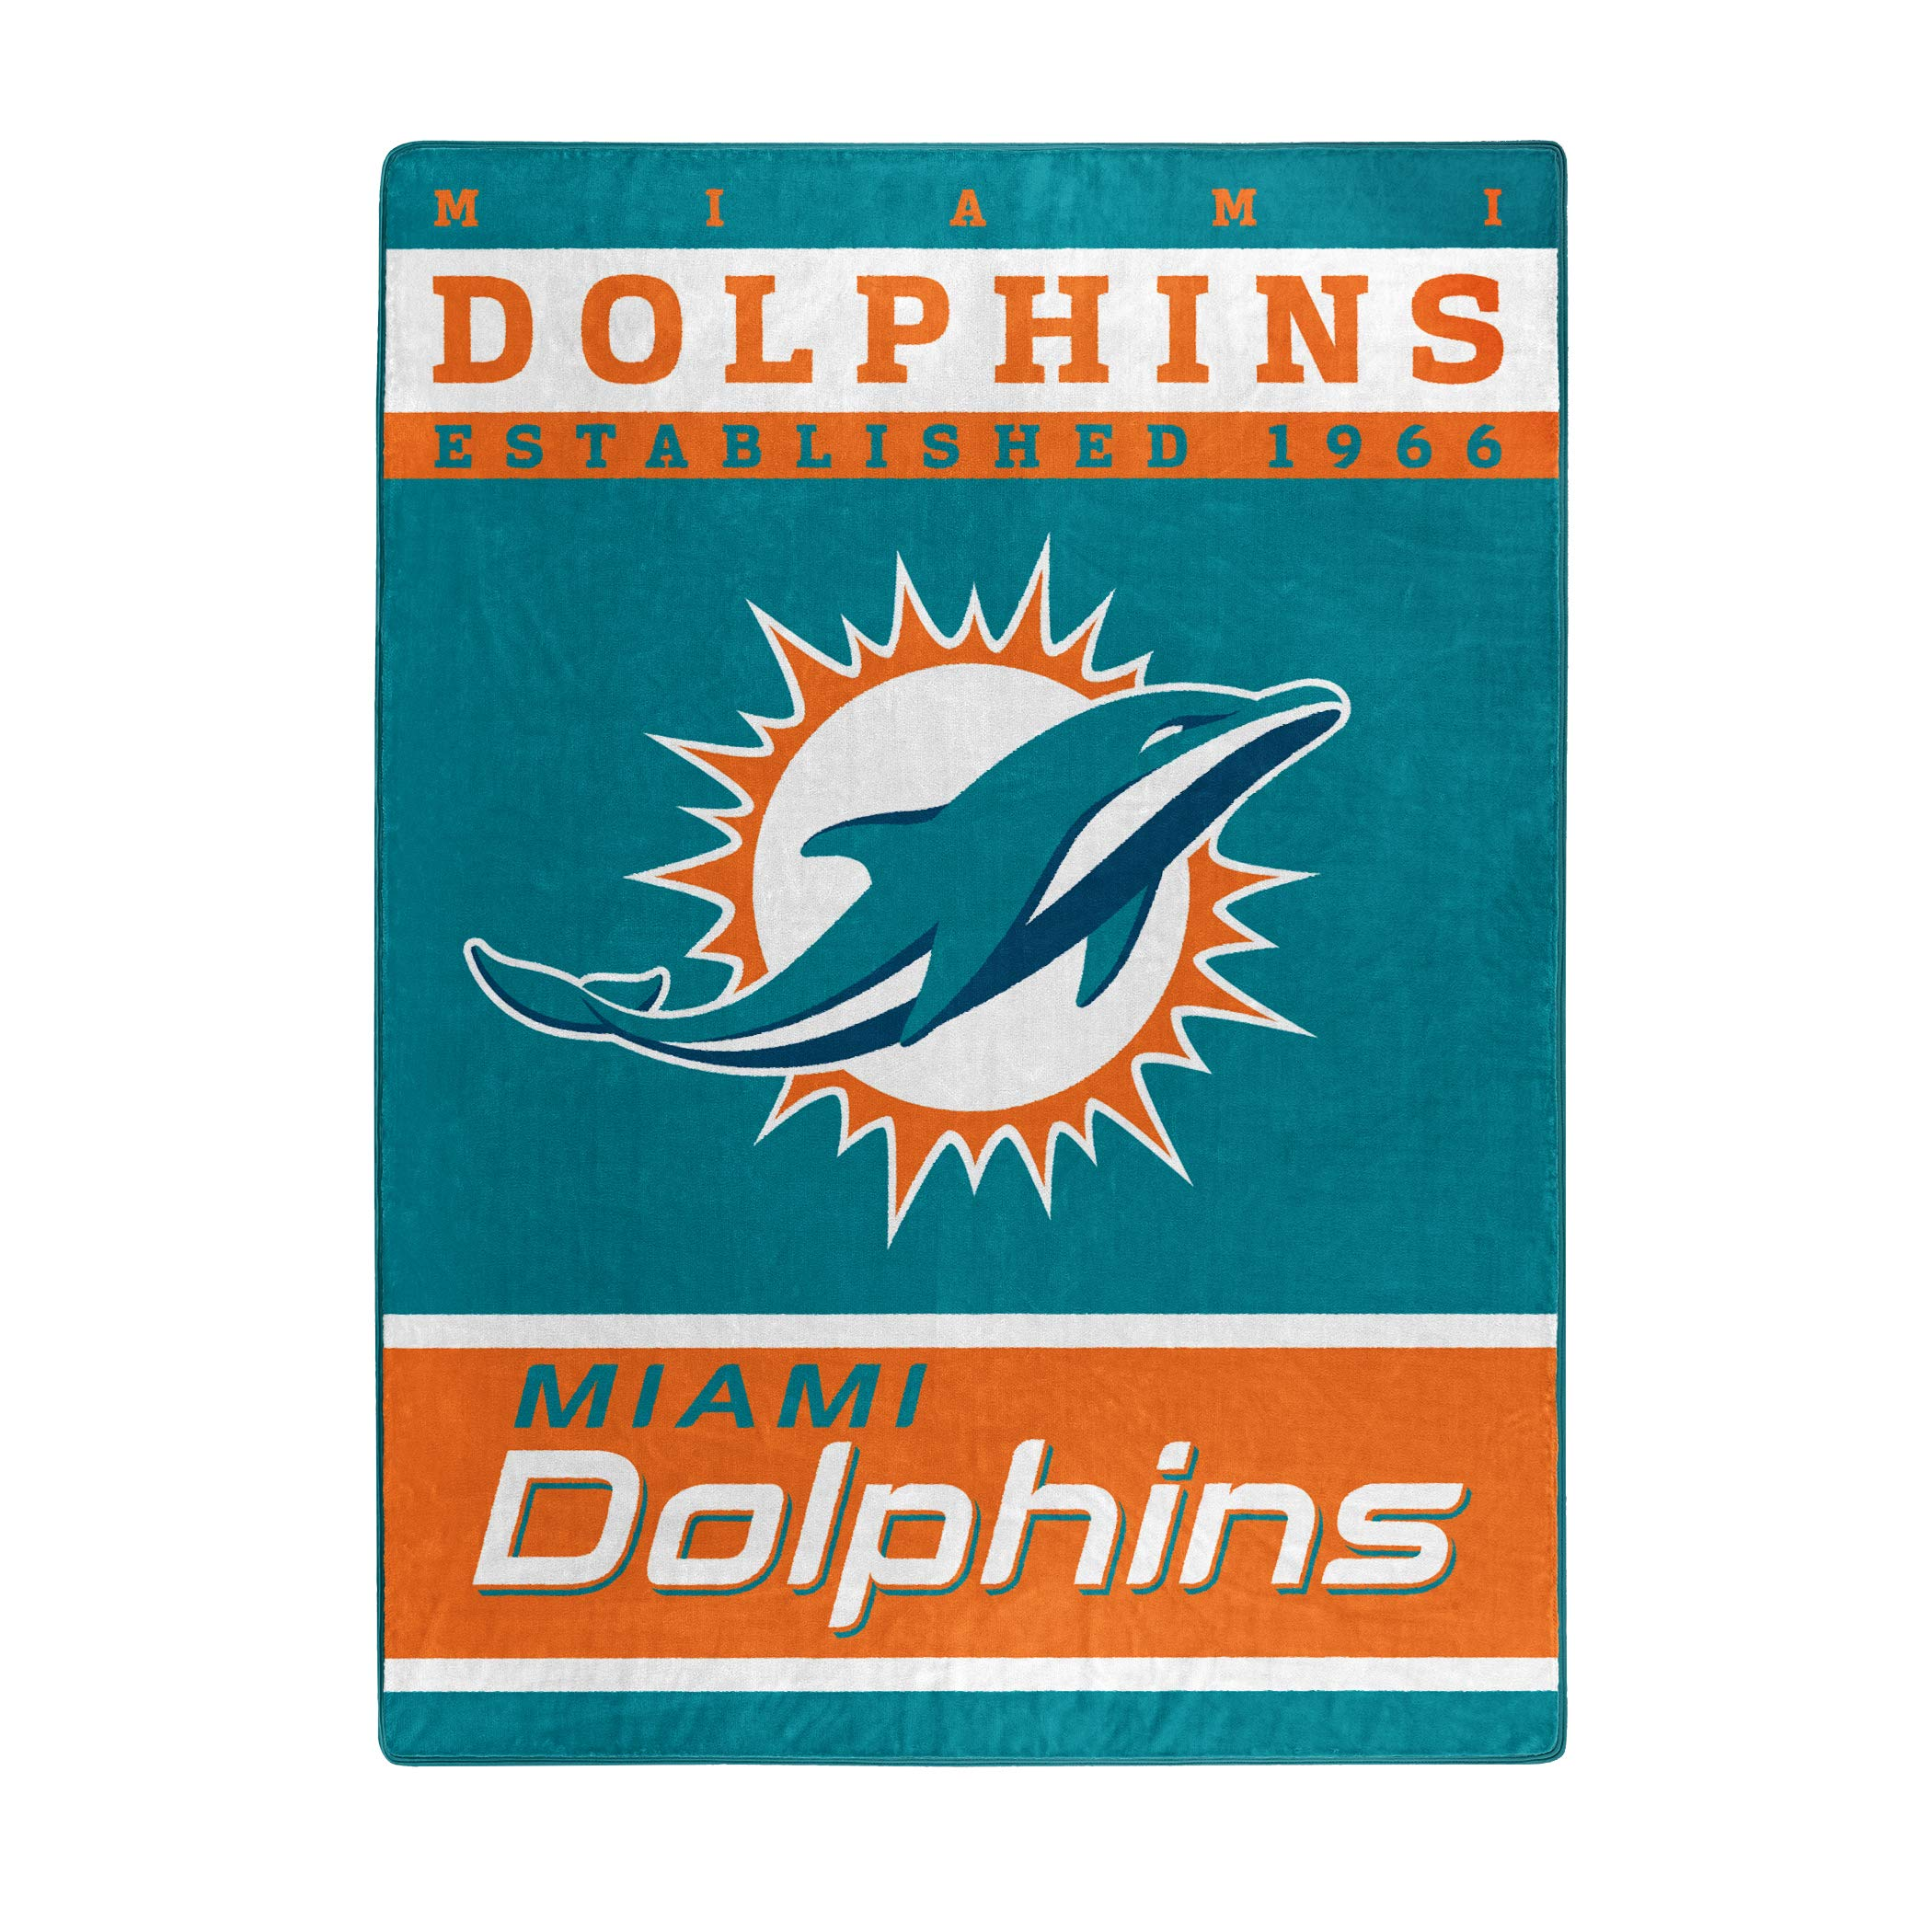 The Northwest Company Officially Licensed NFL Miami Dolphins 12th Man Plush Raschel Throw Blanket, 60'' x 80'', Multi Color by The Northwest Company